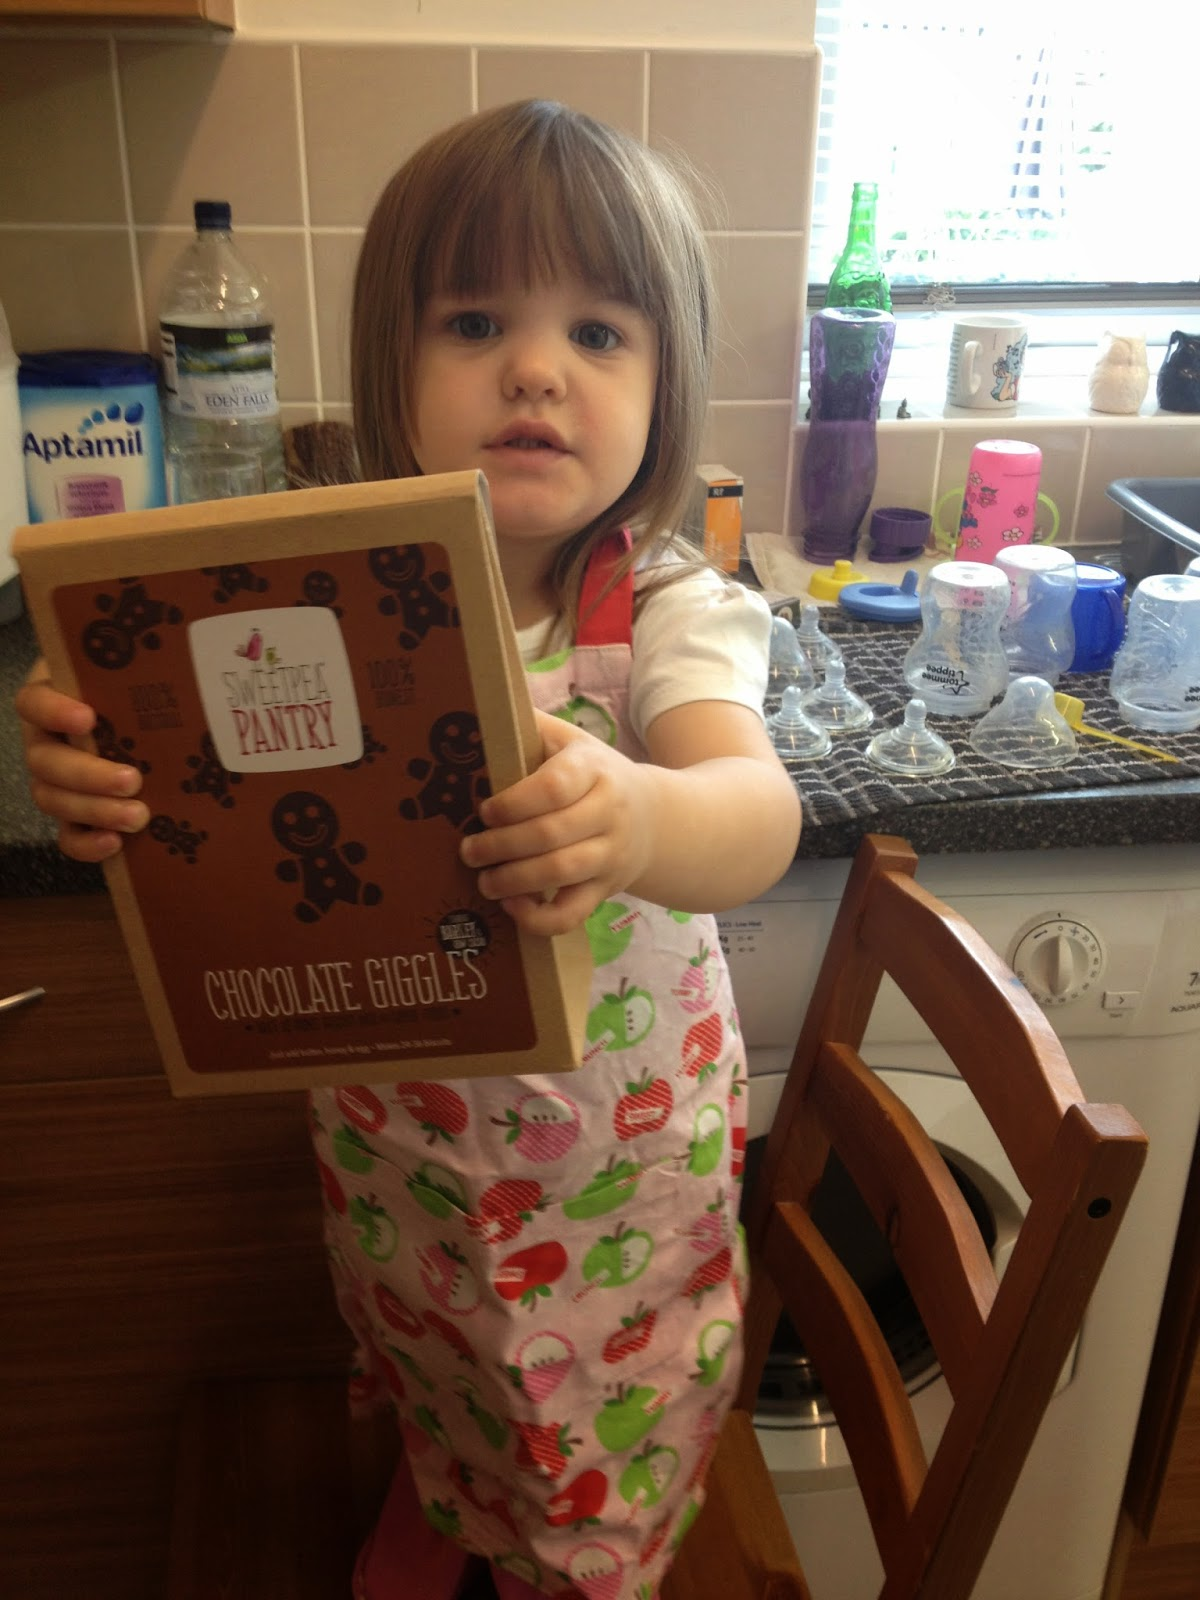 Review: Sweetpea Pantry Chocolate Giggles